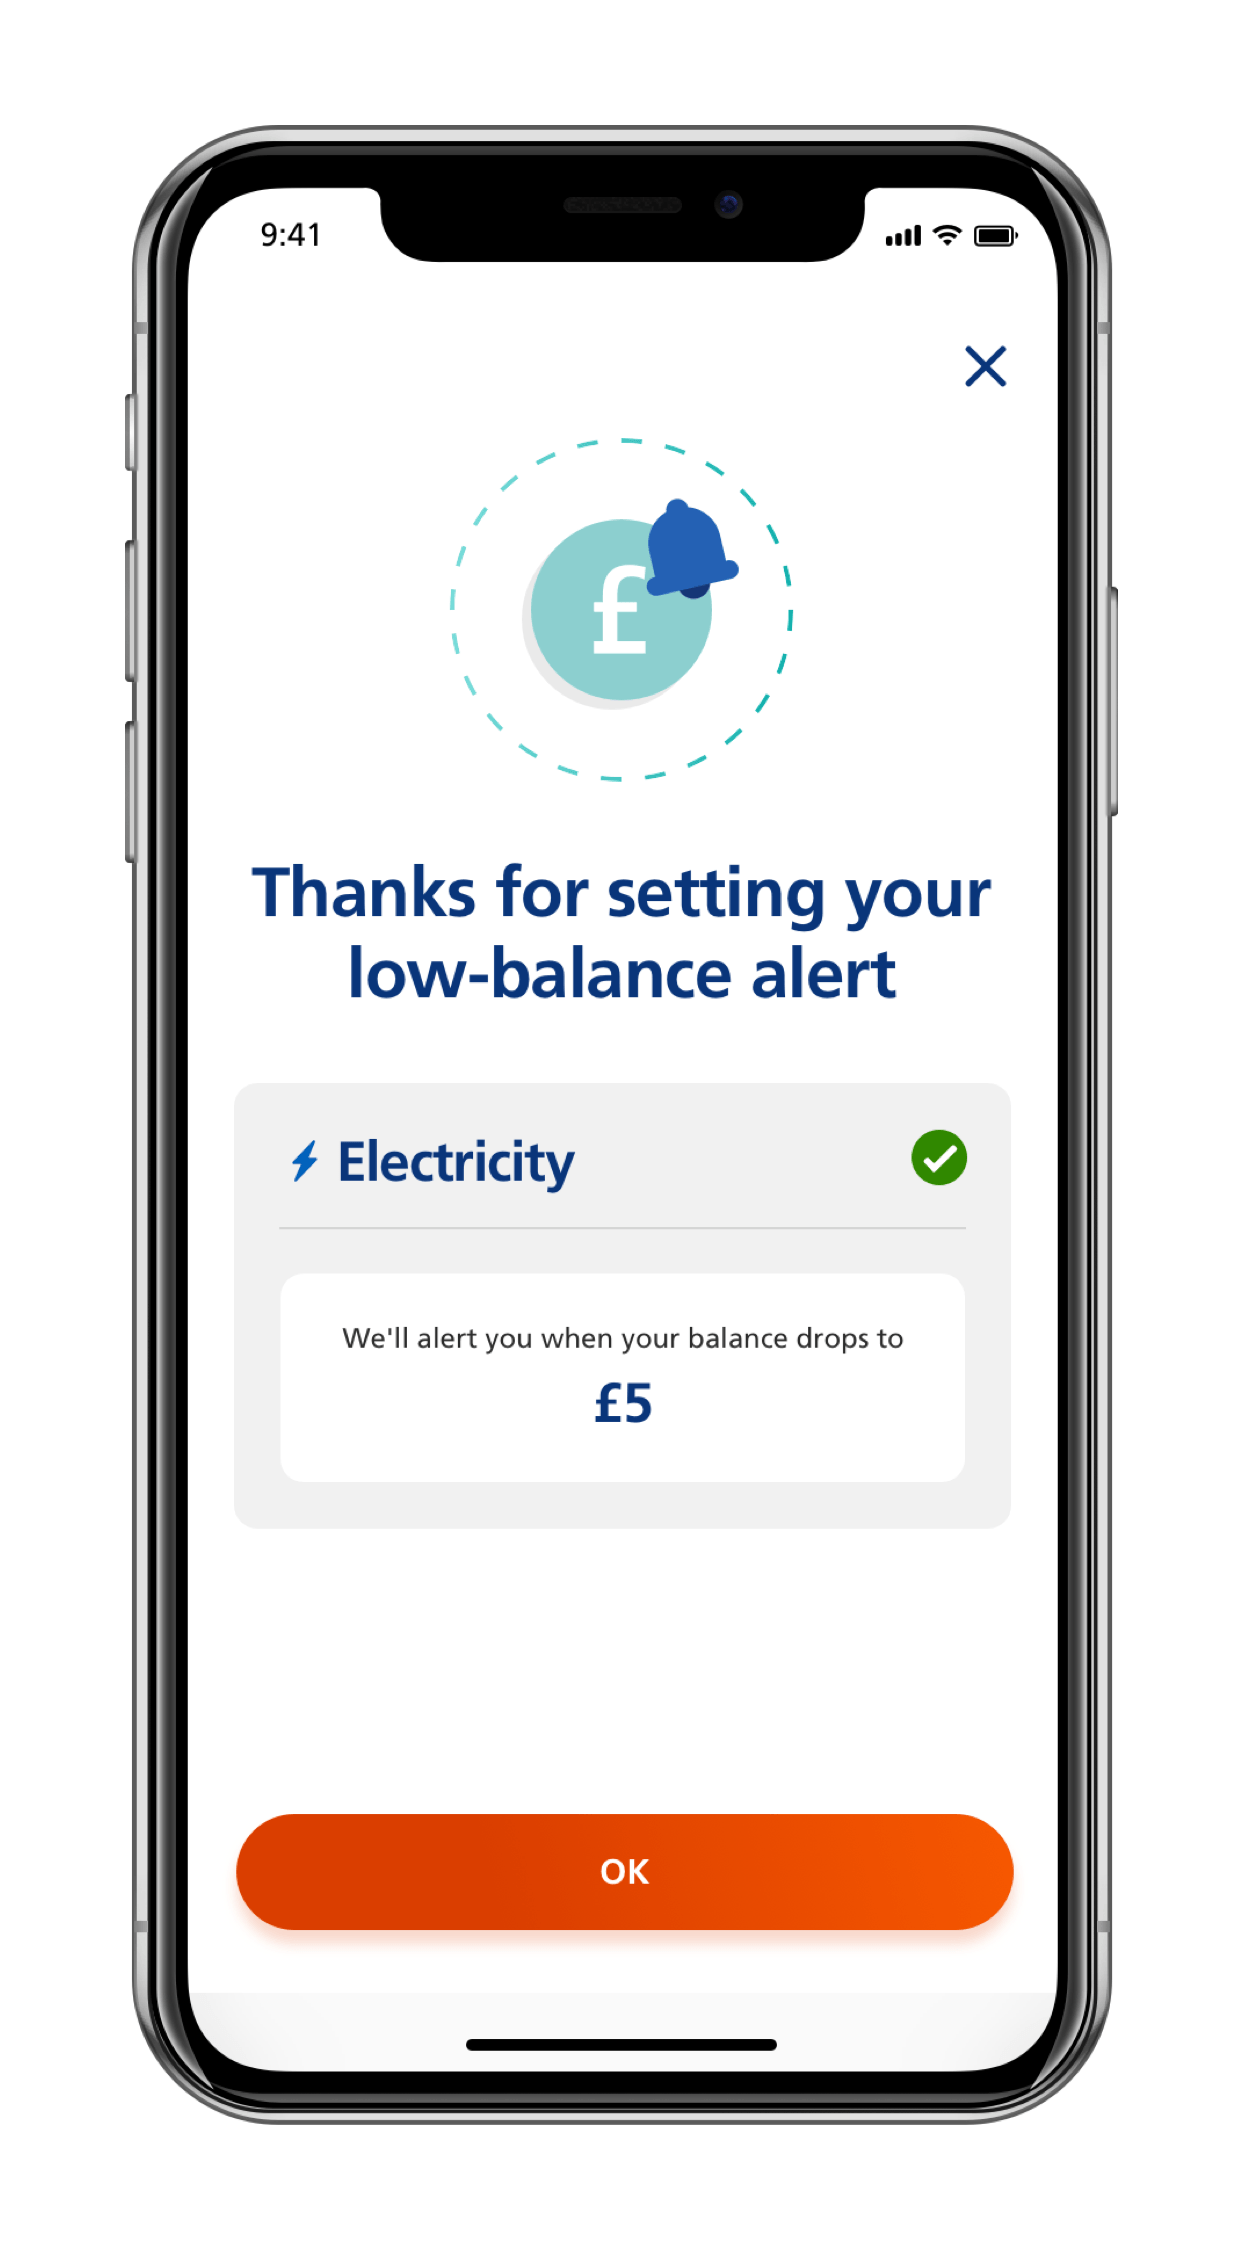 Screen of mobile app showing how to receive a low balance alert for a prepayment meter